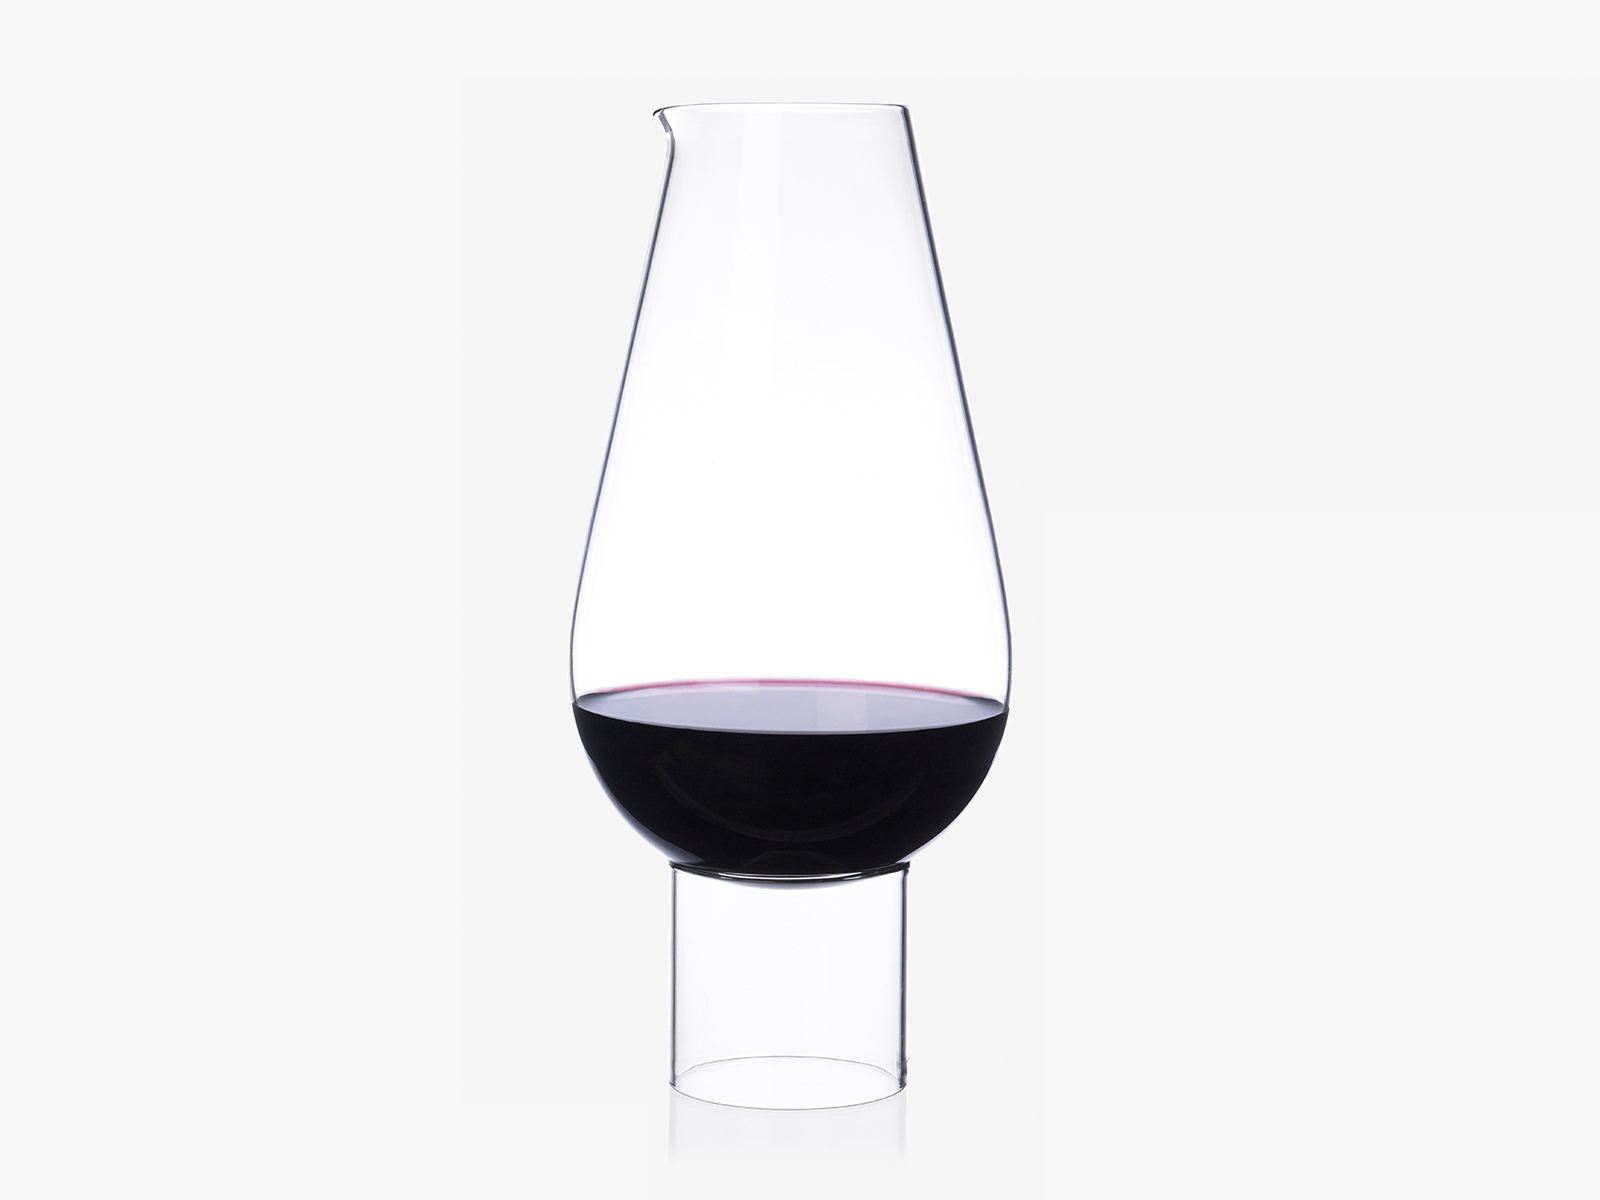 Hybrid Wine | Water Carafe | Vase - A hybrid vessel that is both wine carafe or water jug, sometimes even a flower vase. The design contains features from the worlds of both stemware and serving glass that makes it feel at home on almost any table.